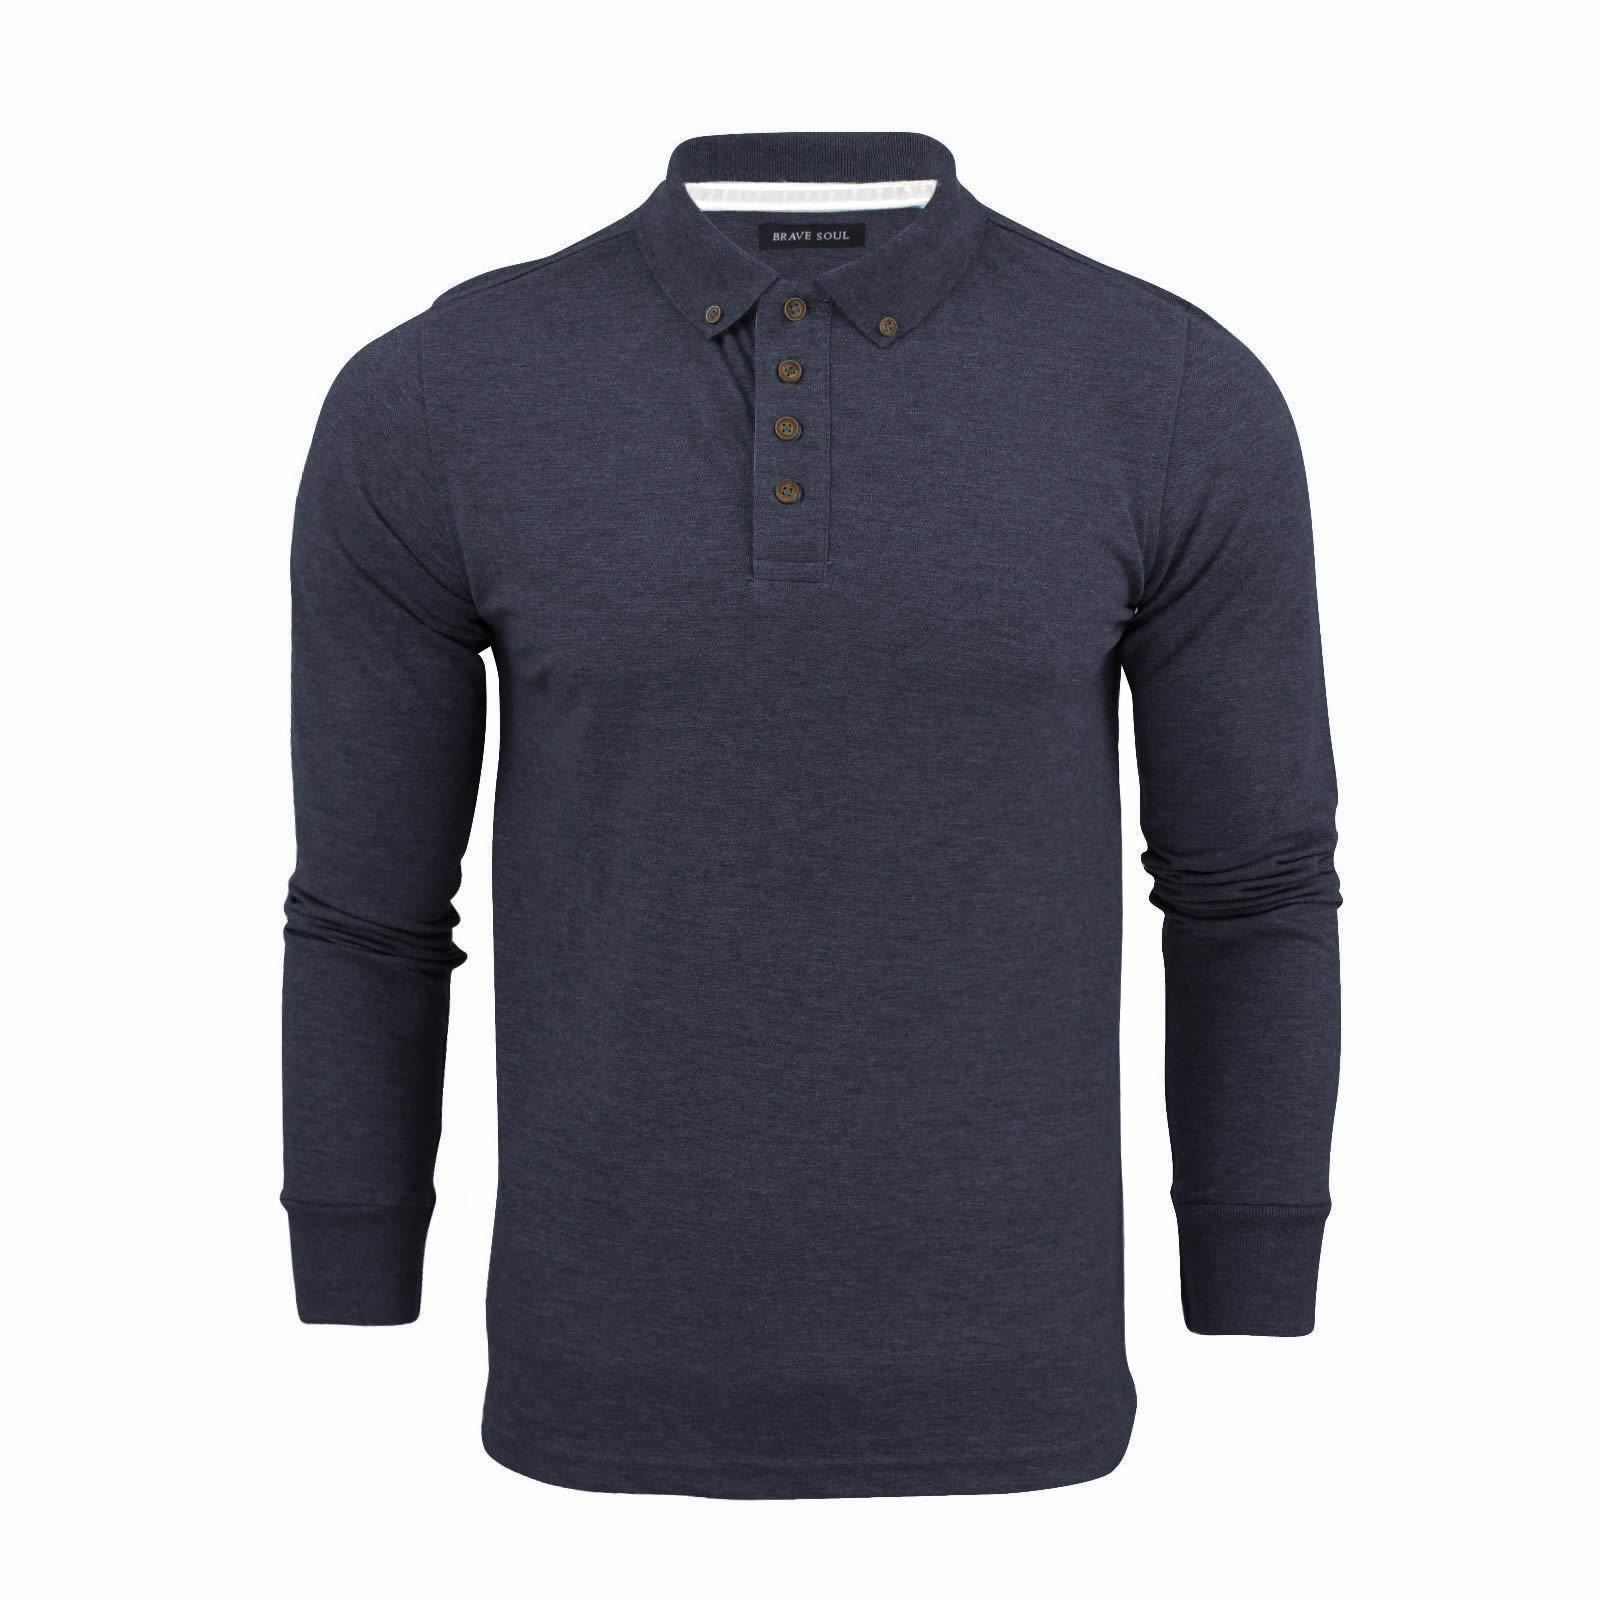 Brave-Soul-Lincoln-Mens-Polo-T-Shirt-Long-Sleeve-Cotton-Pique-Casual-Top thumbnail 44